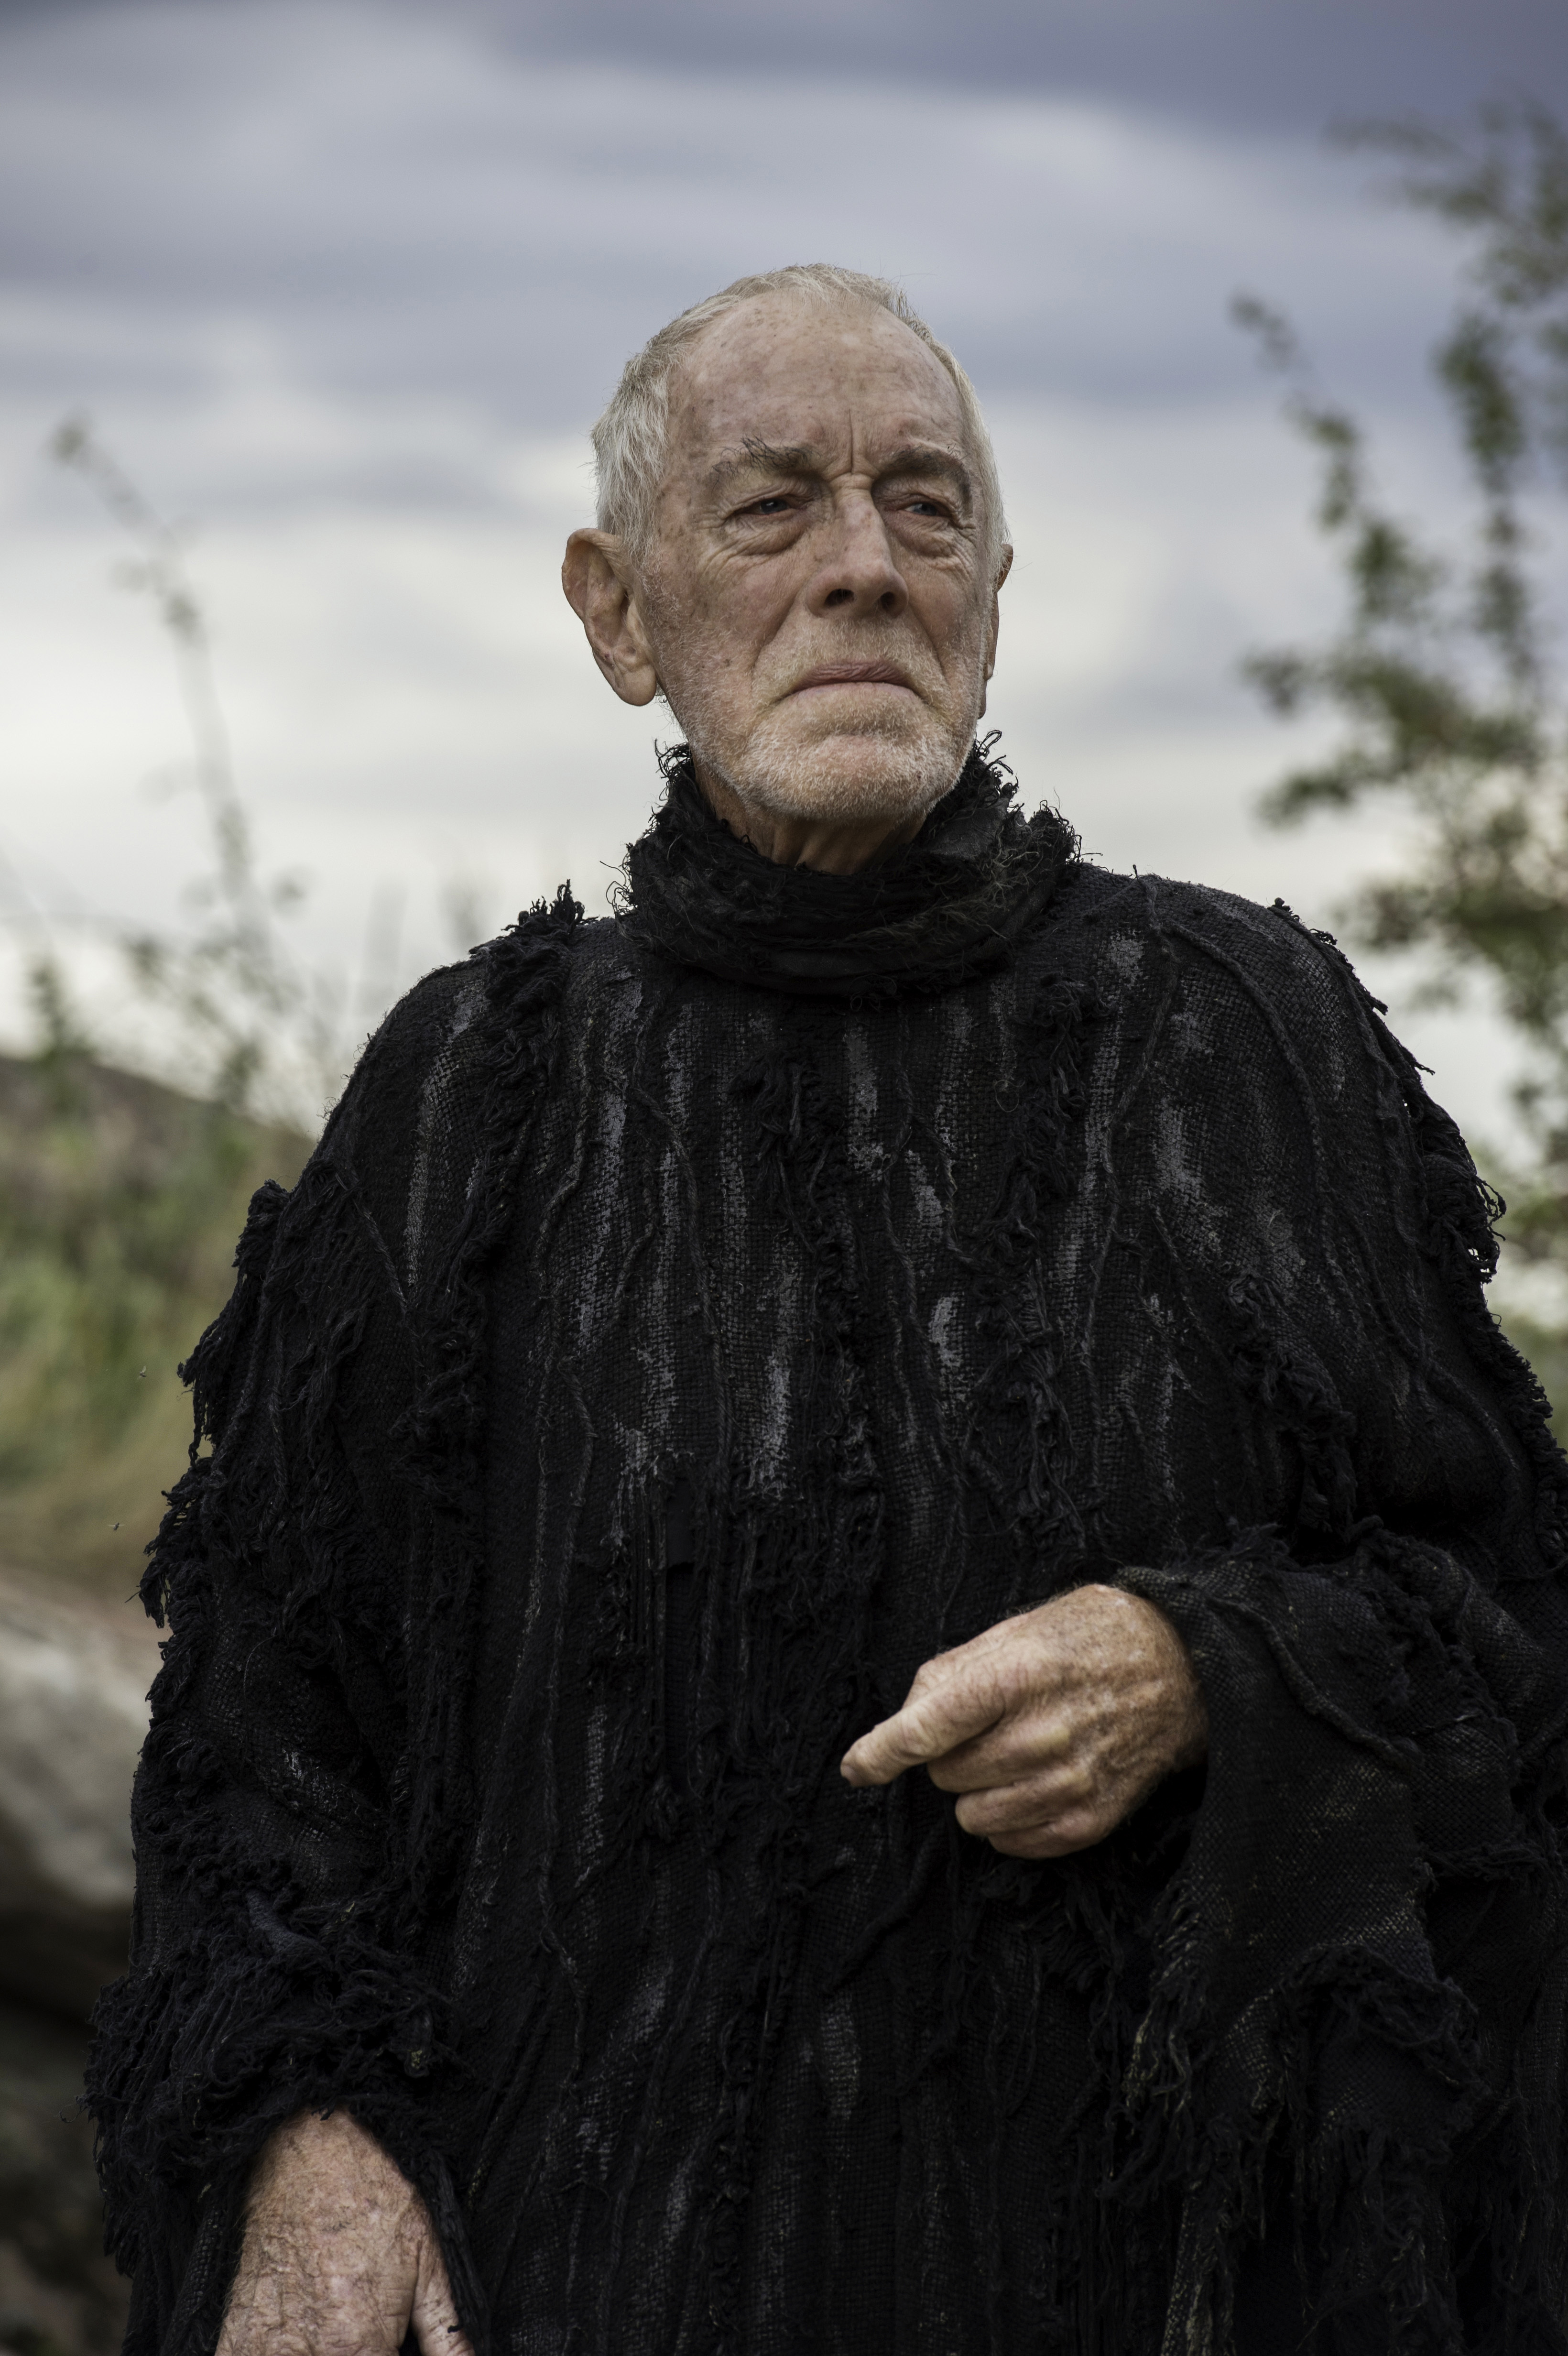 Max von Sydow as the Three-Eyed Raven in Game of Thrones, Season 6, Episode 3, 2016.